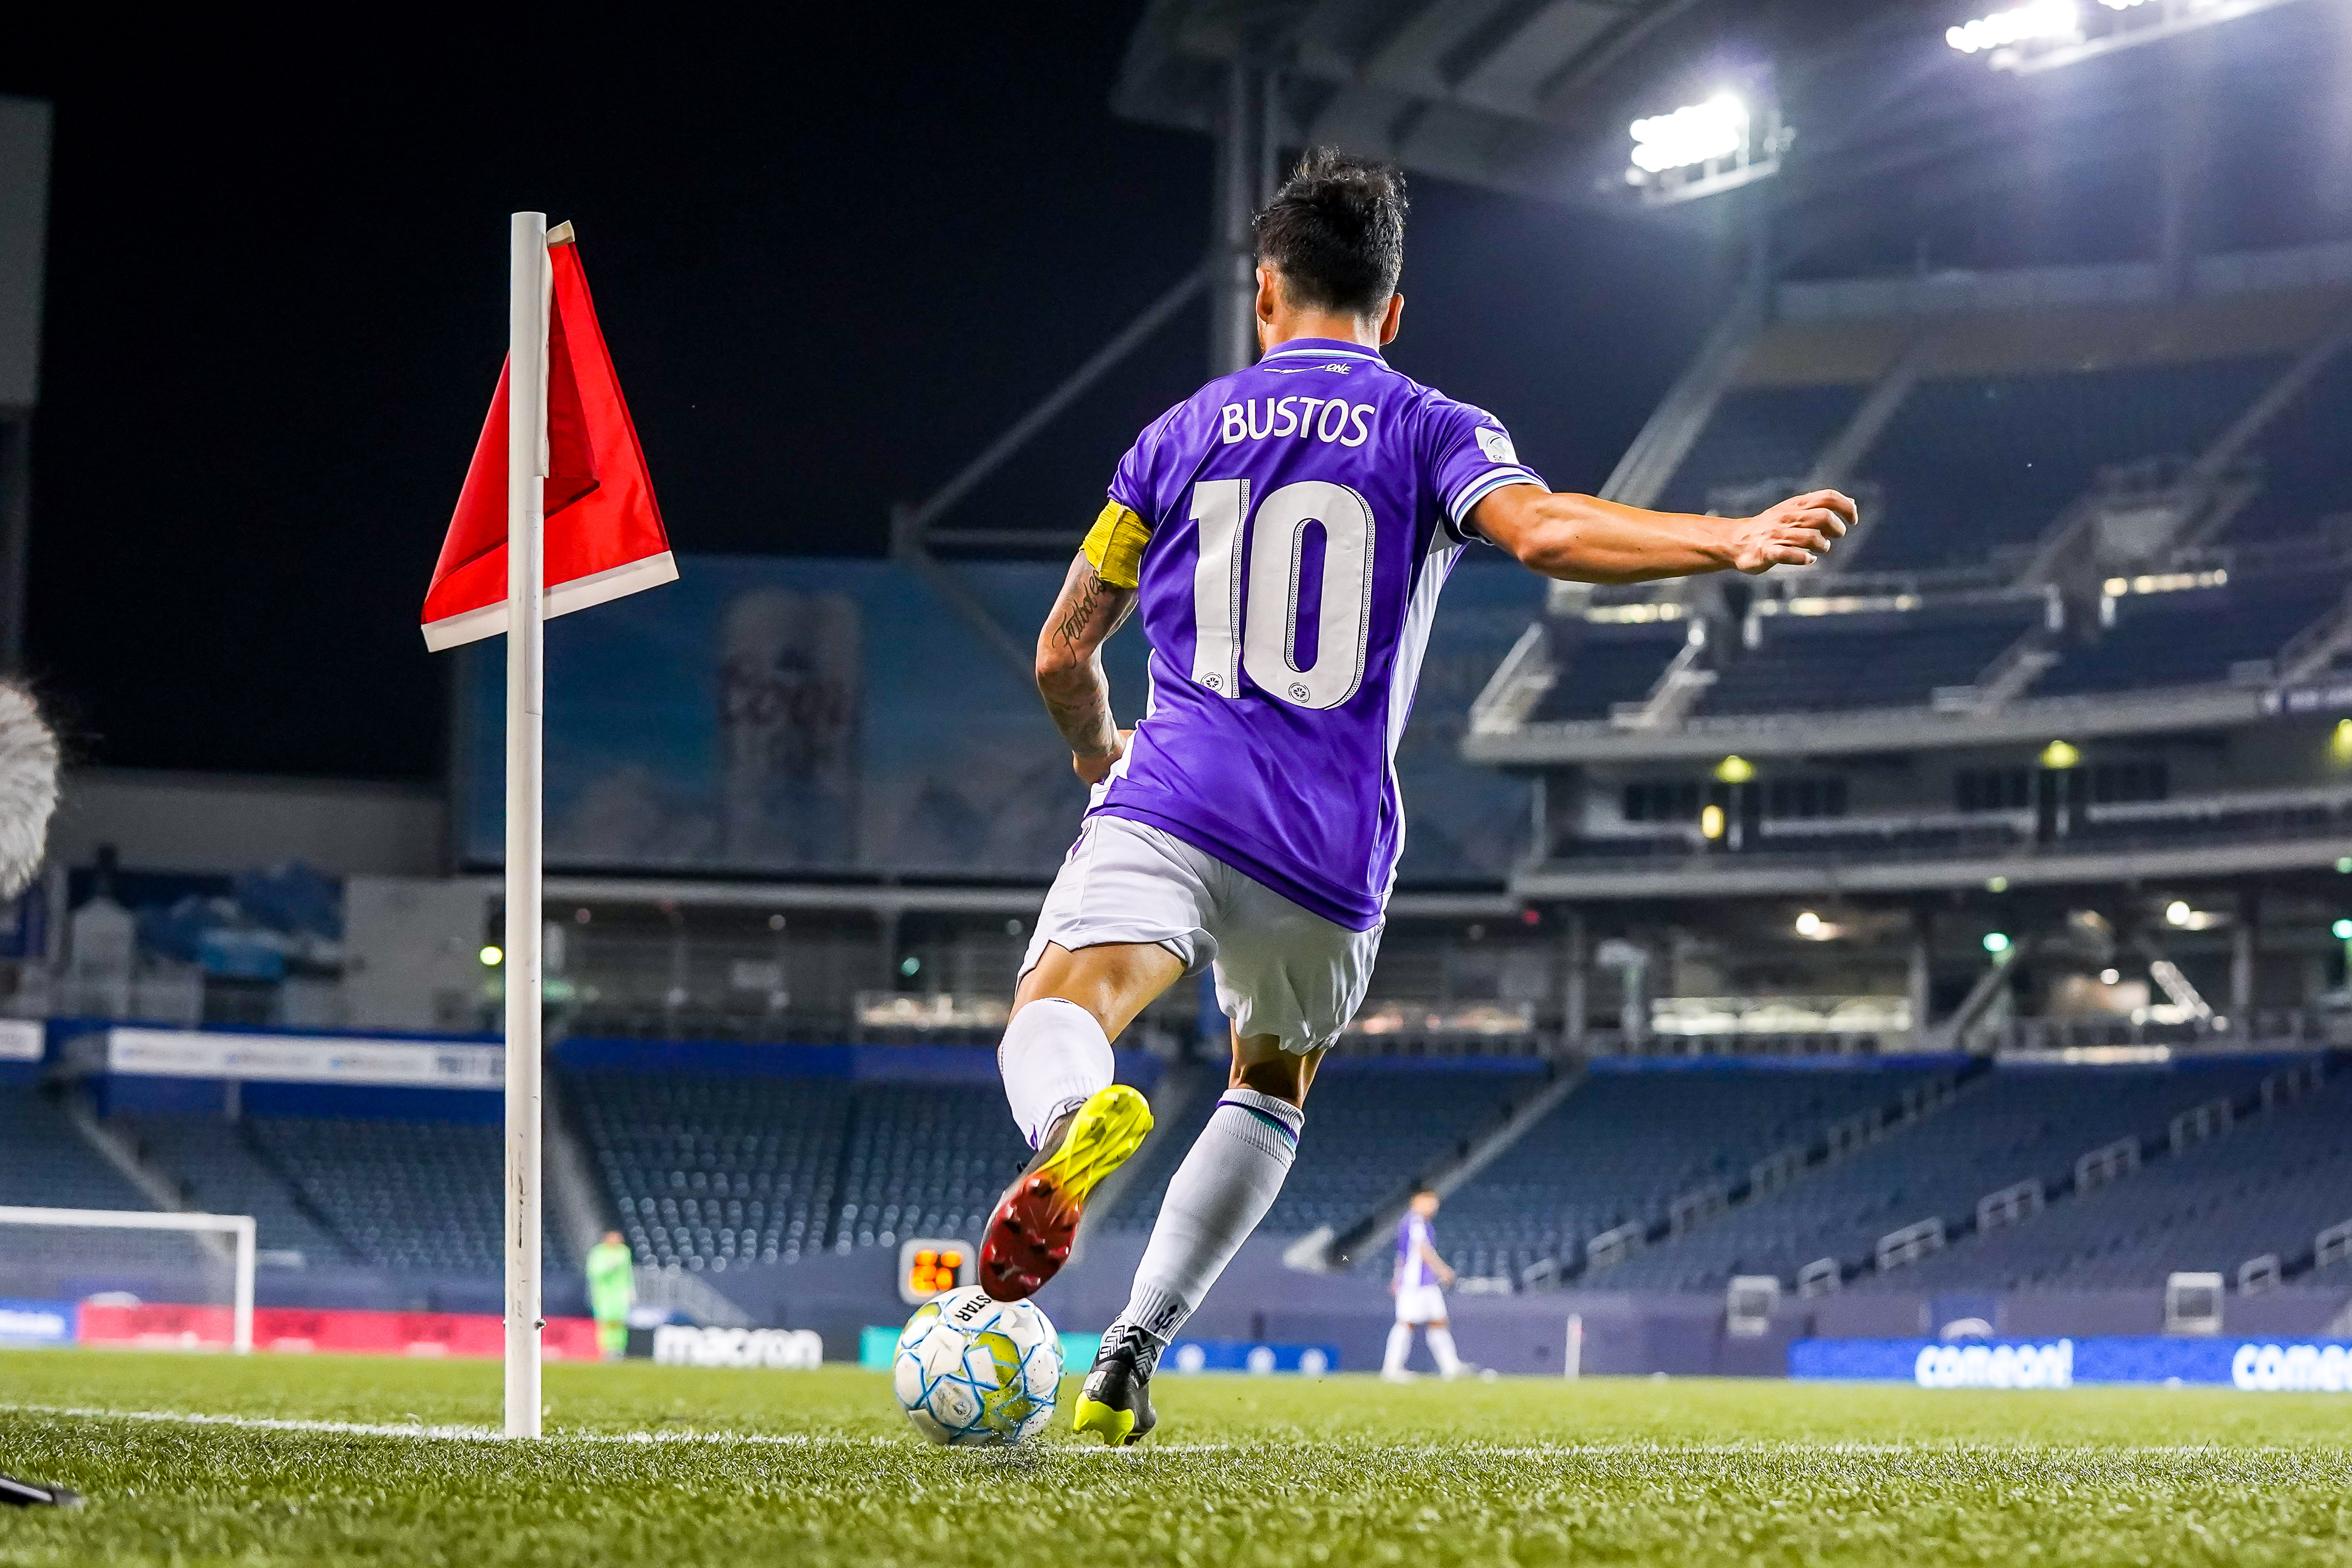 July 17, 2021. Pacific FC vs Forge FC. Second-Half. Marco Bustos of Pacific FC takes a corner kick.